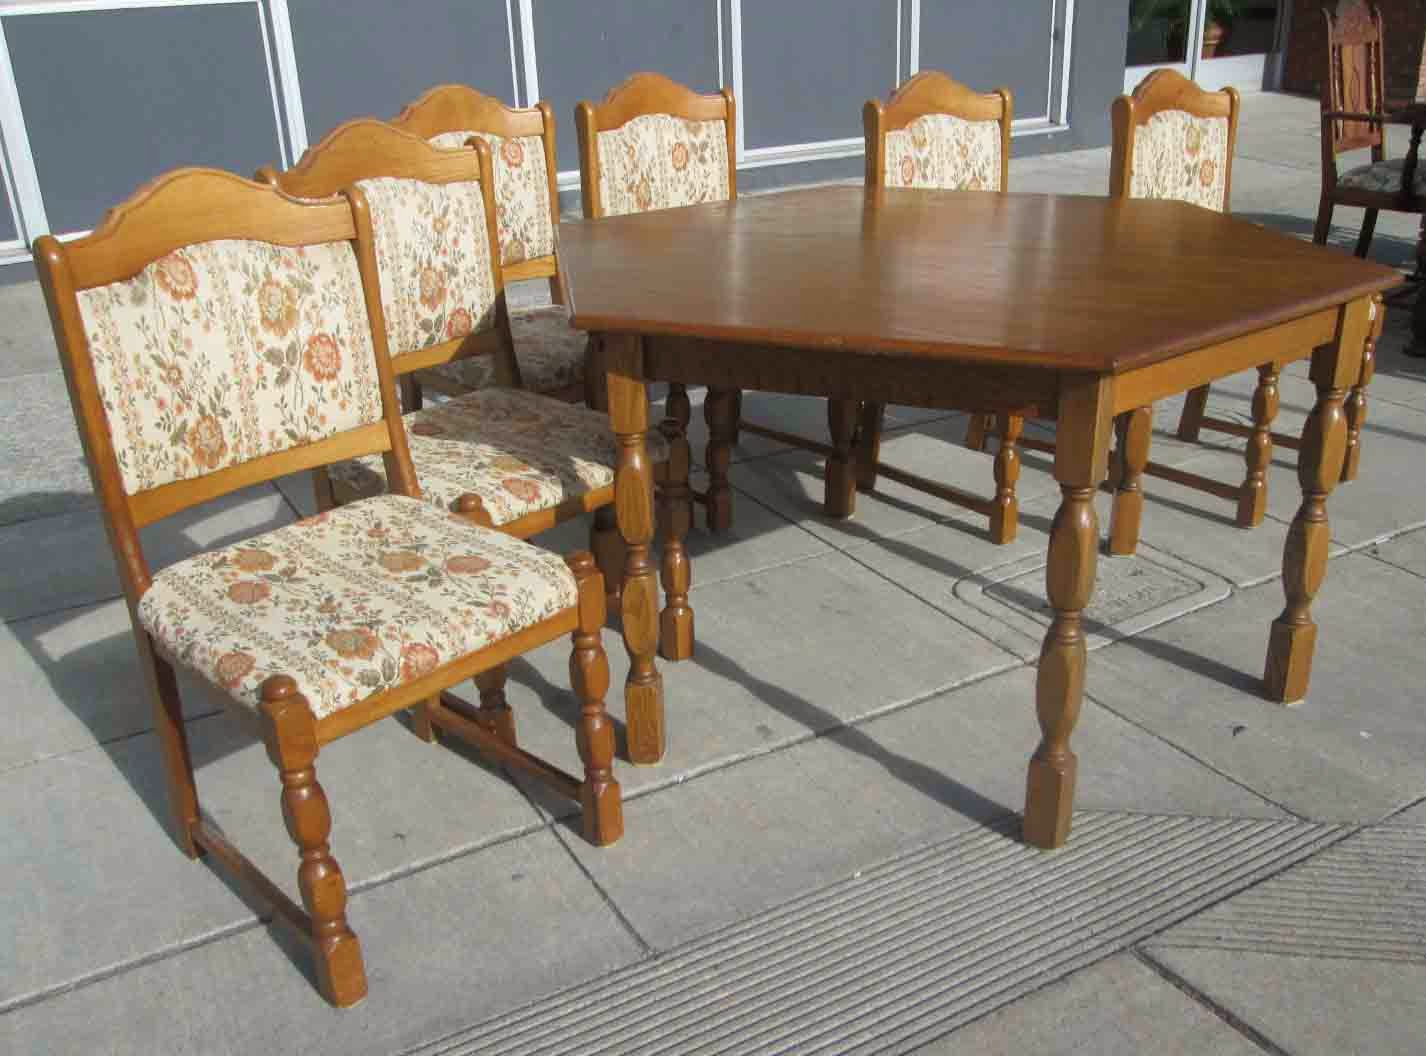 Uhuru Furniture & Collectibles: Sold German Dining Table In Current Bekasi 63'' Dining Tables (View 13 of 15)